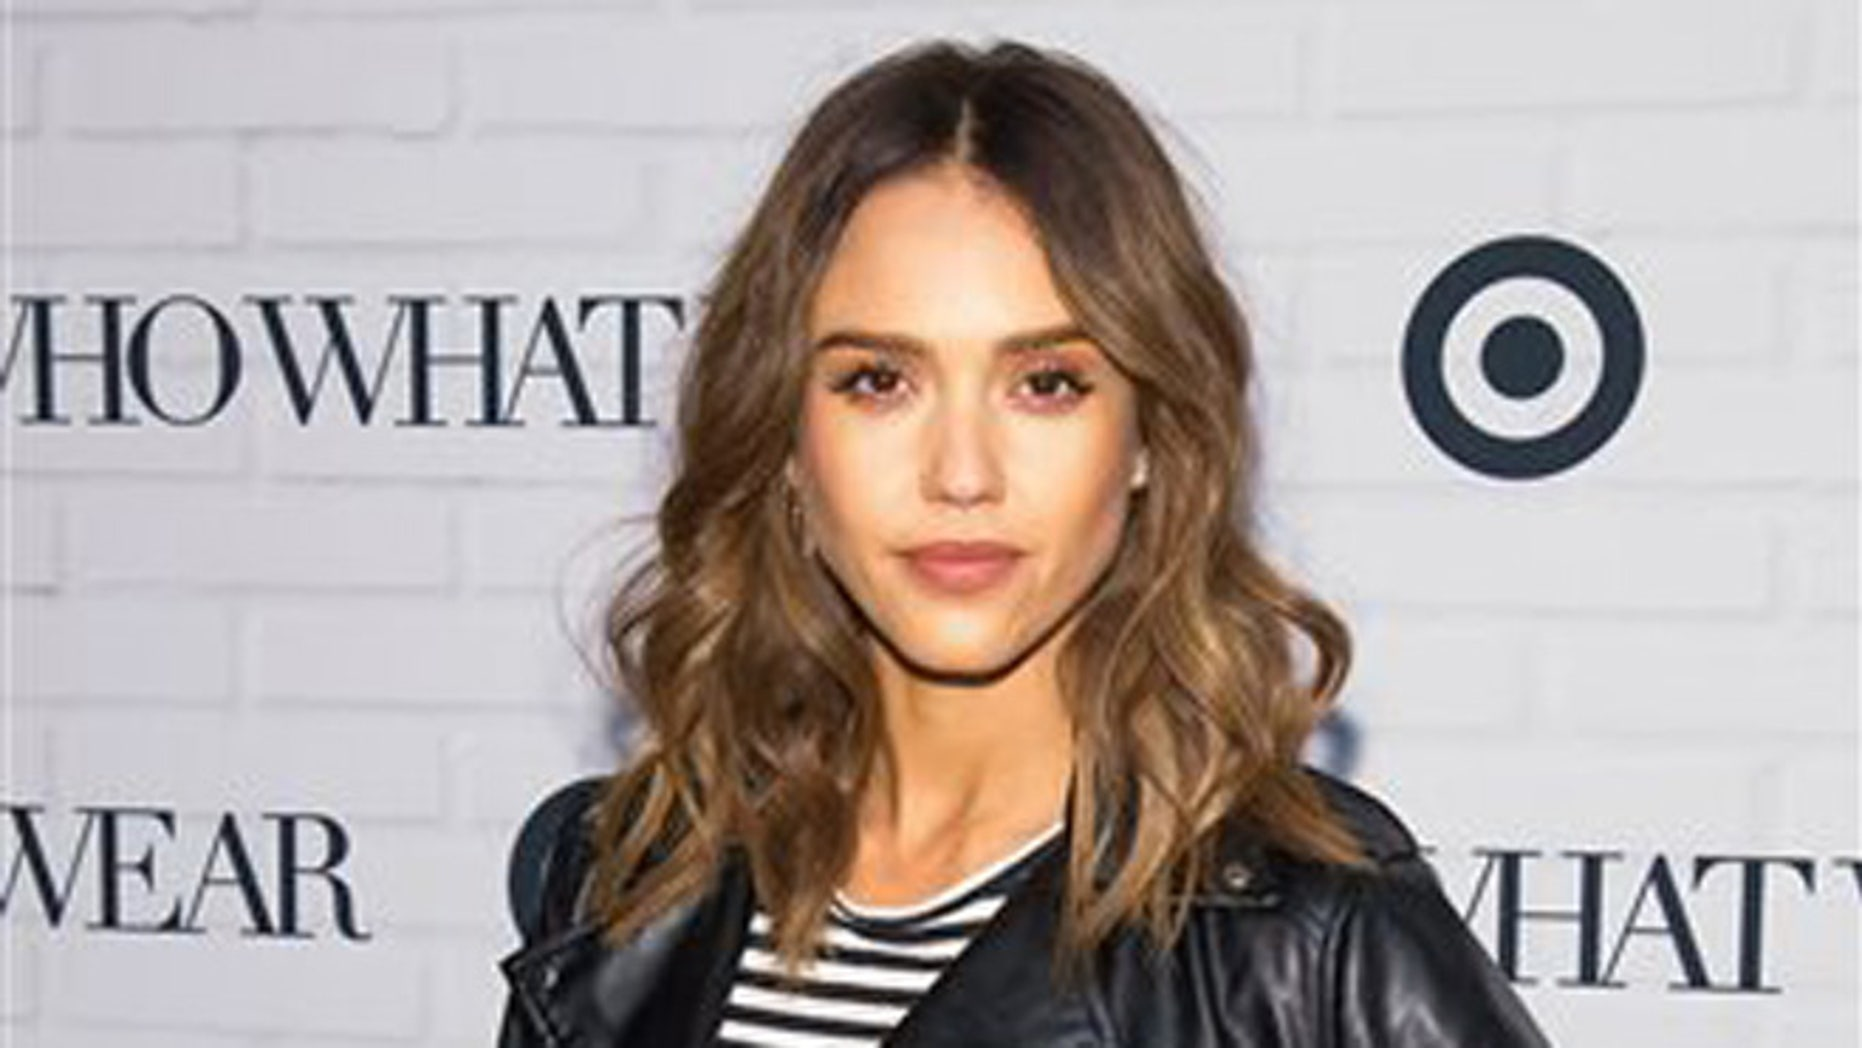 71cfb424aa Jessica Alba's Honest Co. says recent ingredient report is 'reckless ...